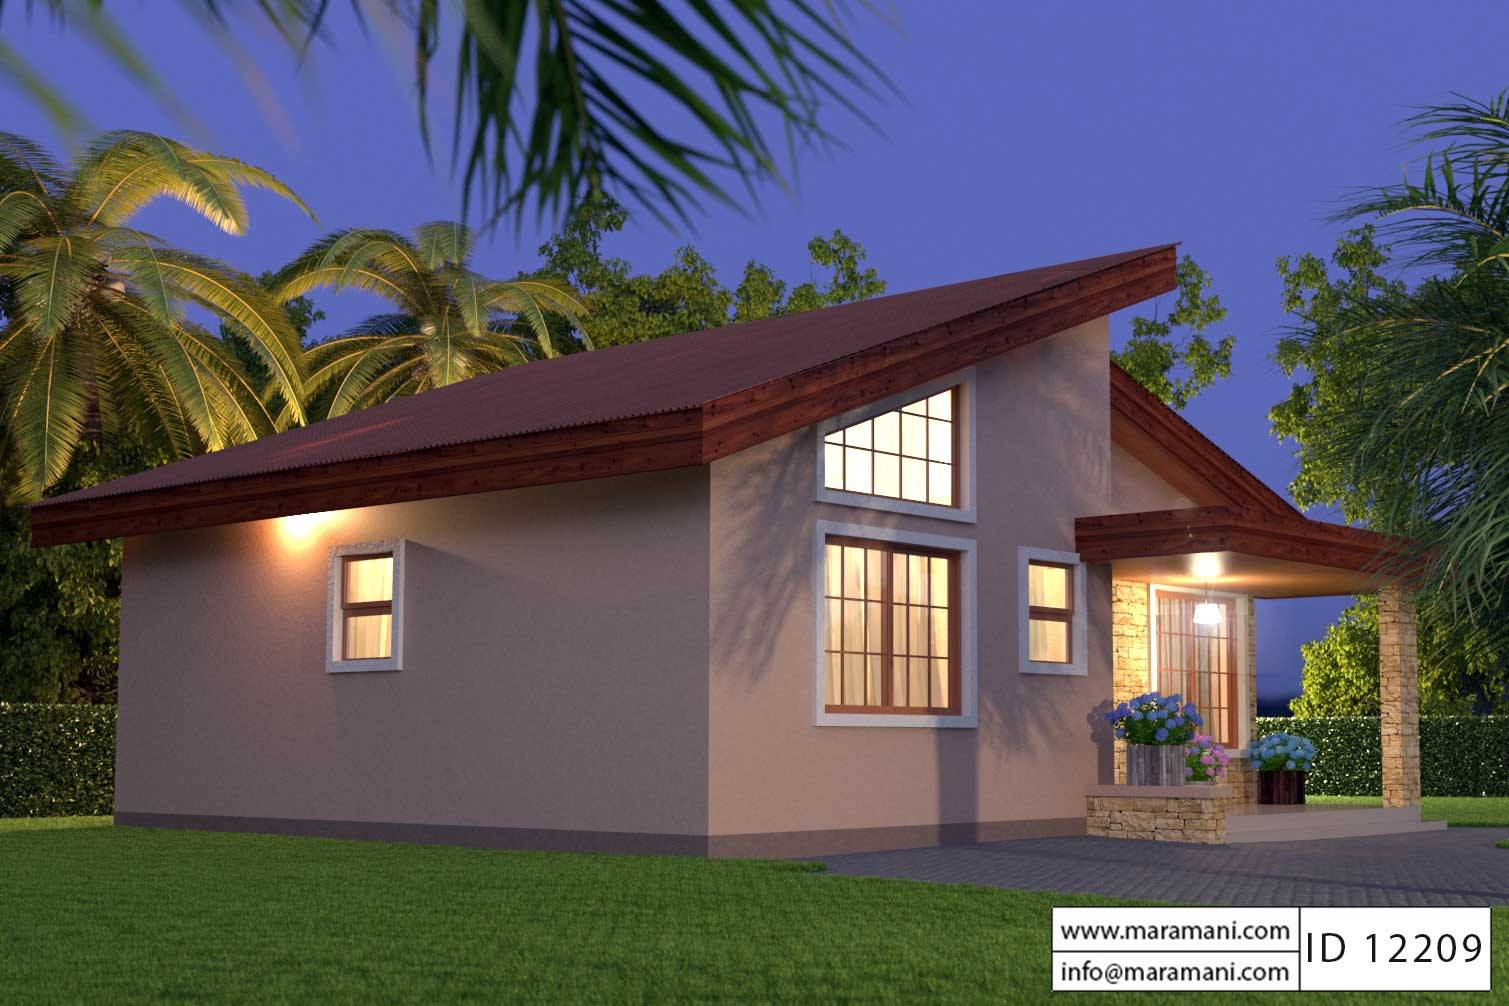 Two bedroom house id 12209 for 2 bedroom house designs pictures